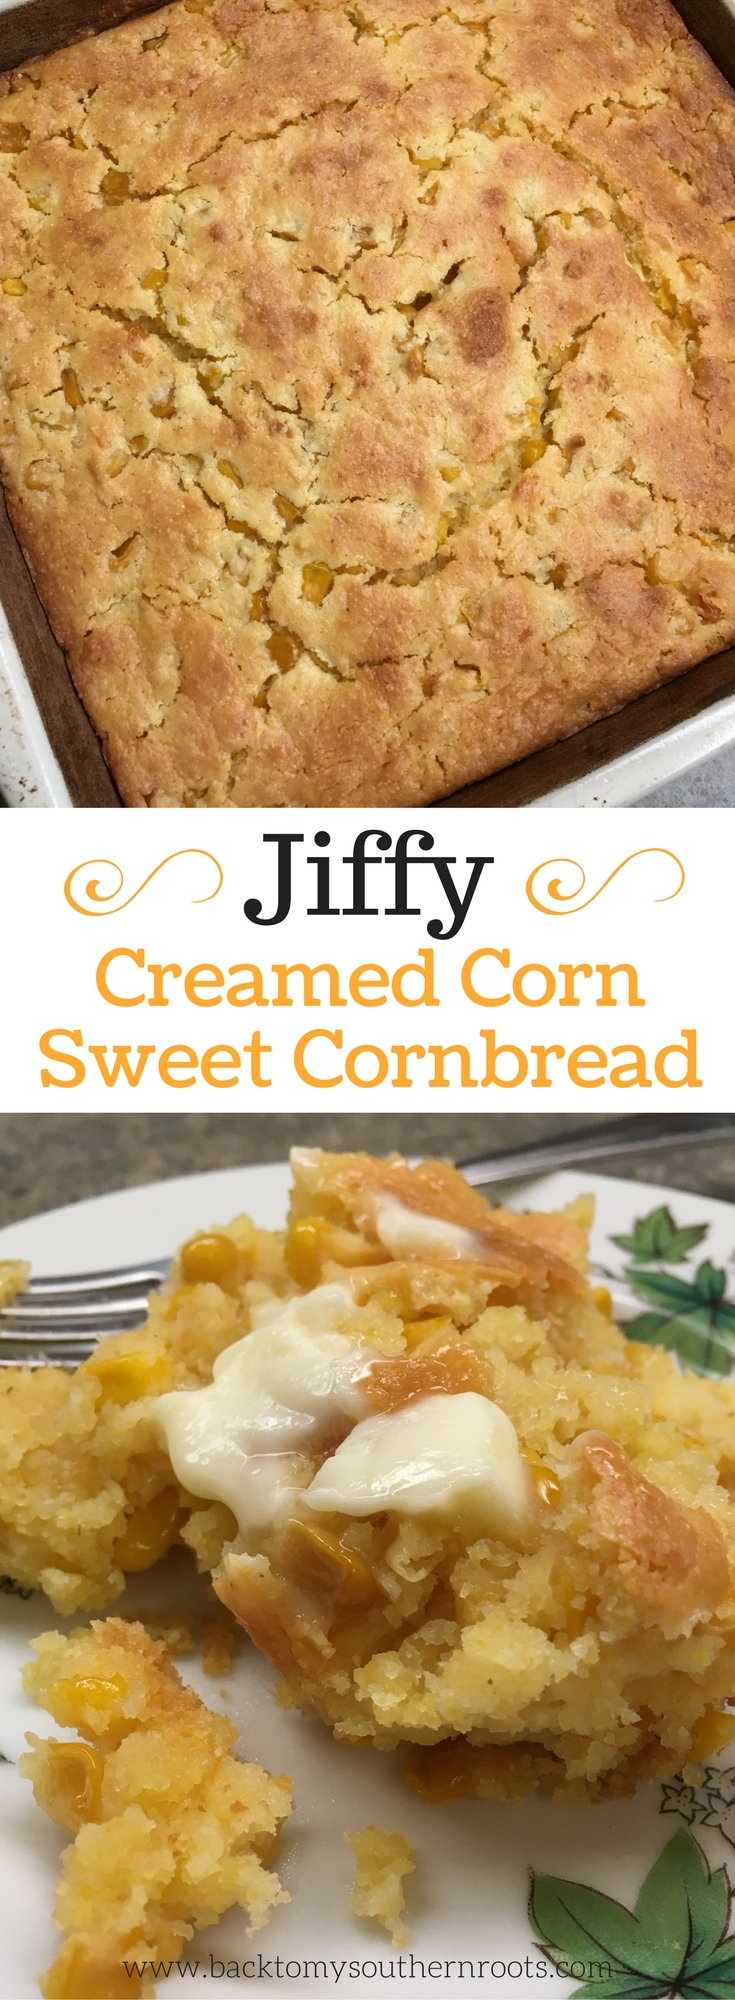 Jiffy Creamed Sweet Cornbread is one of my favorite side dishes. Cornbread is a staple in the south. Spoon it on a plate, add a little butter, and you have the perfect sweet cornbread.